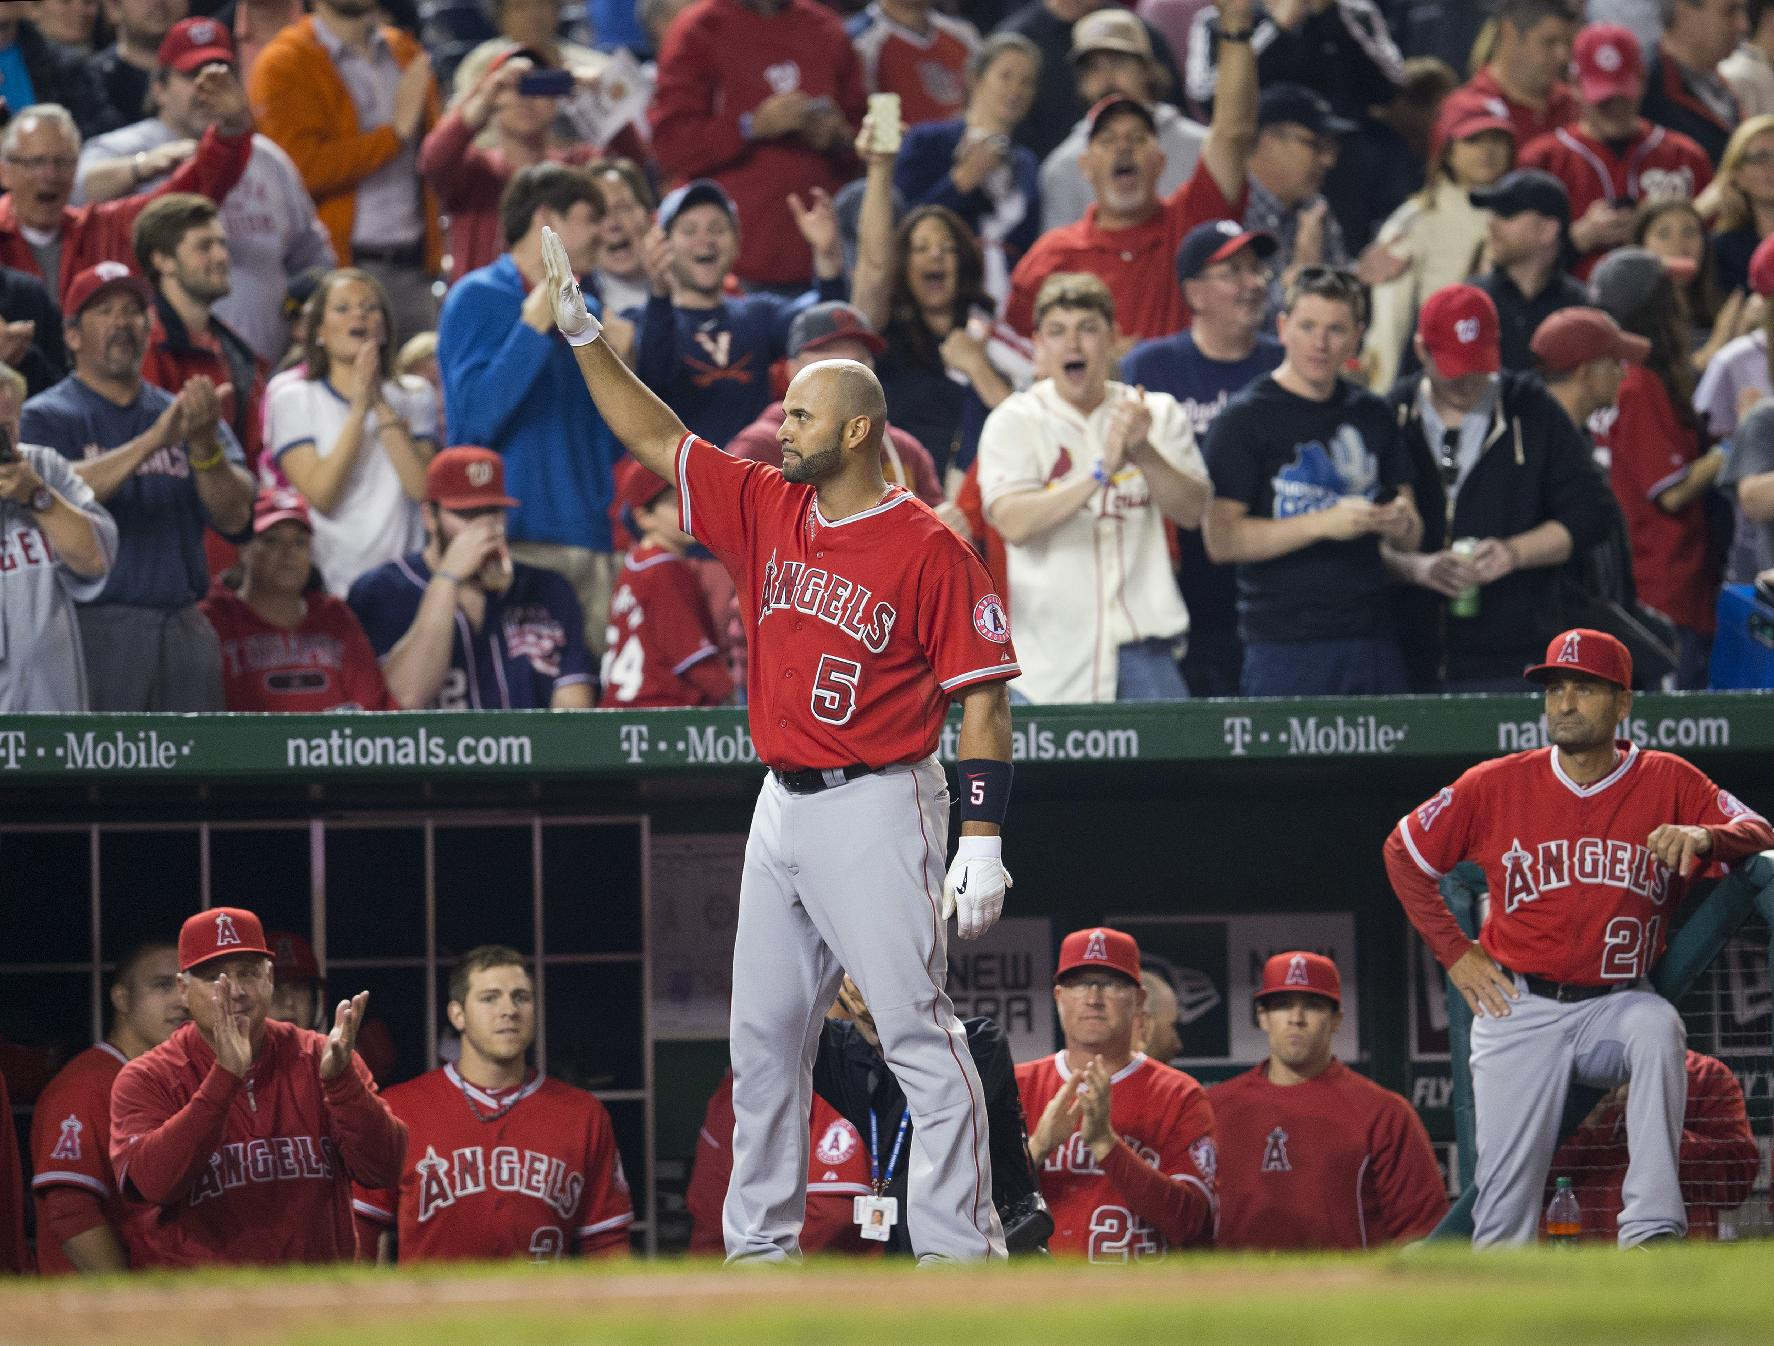 Albert Pujols hits home run No. 500